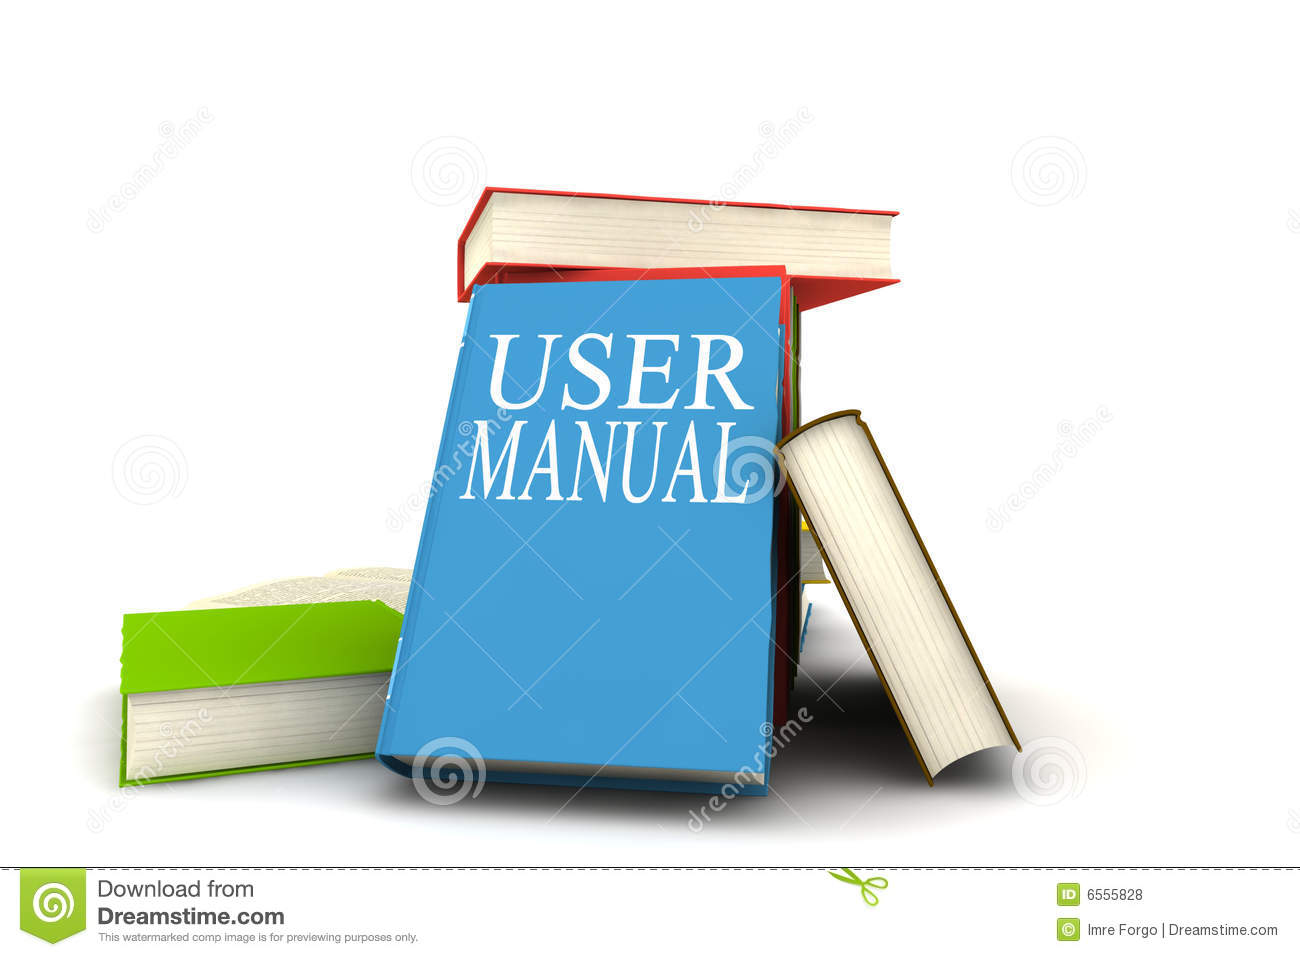 User Manual Books Stock Illustration  Illustration Of Literature